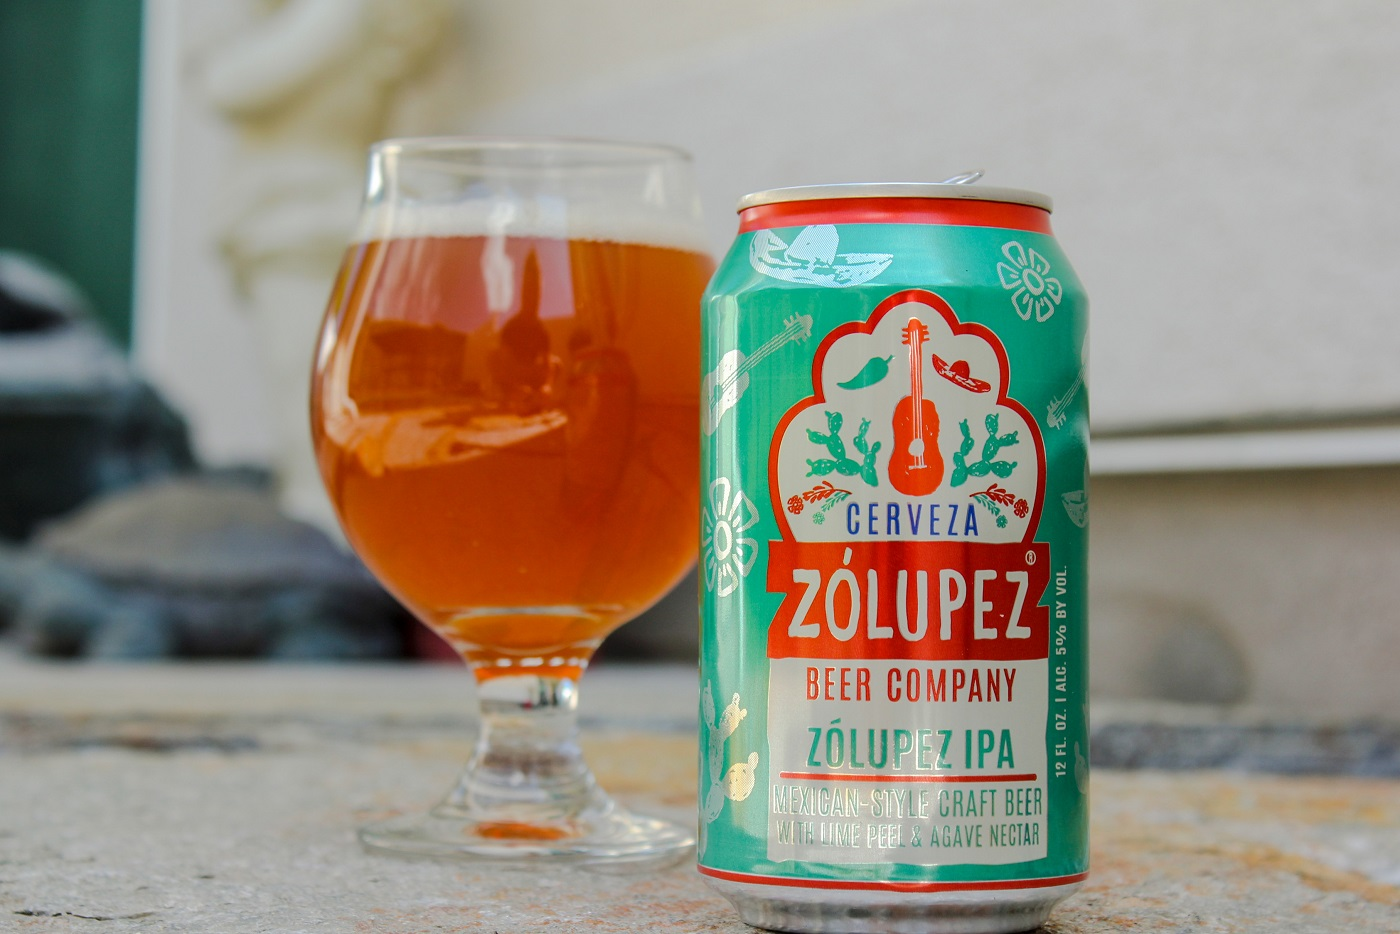 With bits of real lime peel added in, Cerveza Zólupez Beer Company's Zólupez IPA is much different than your traditional IPA.